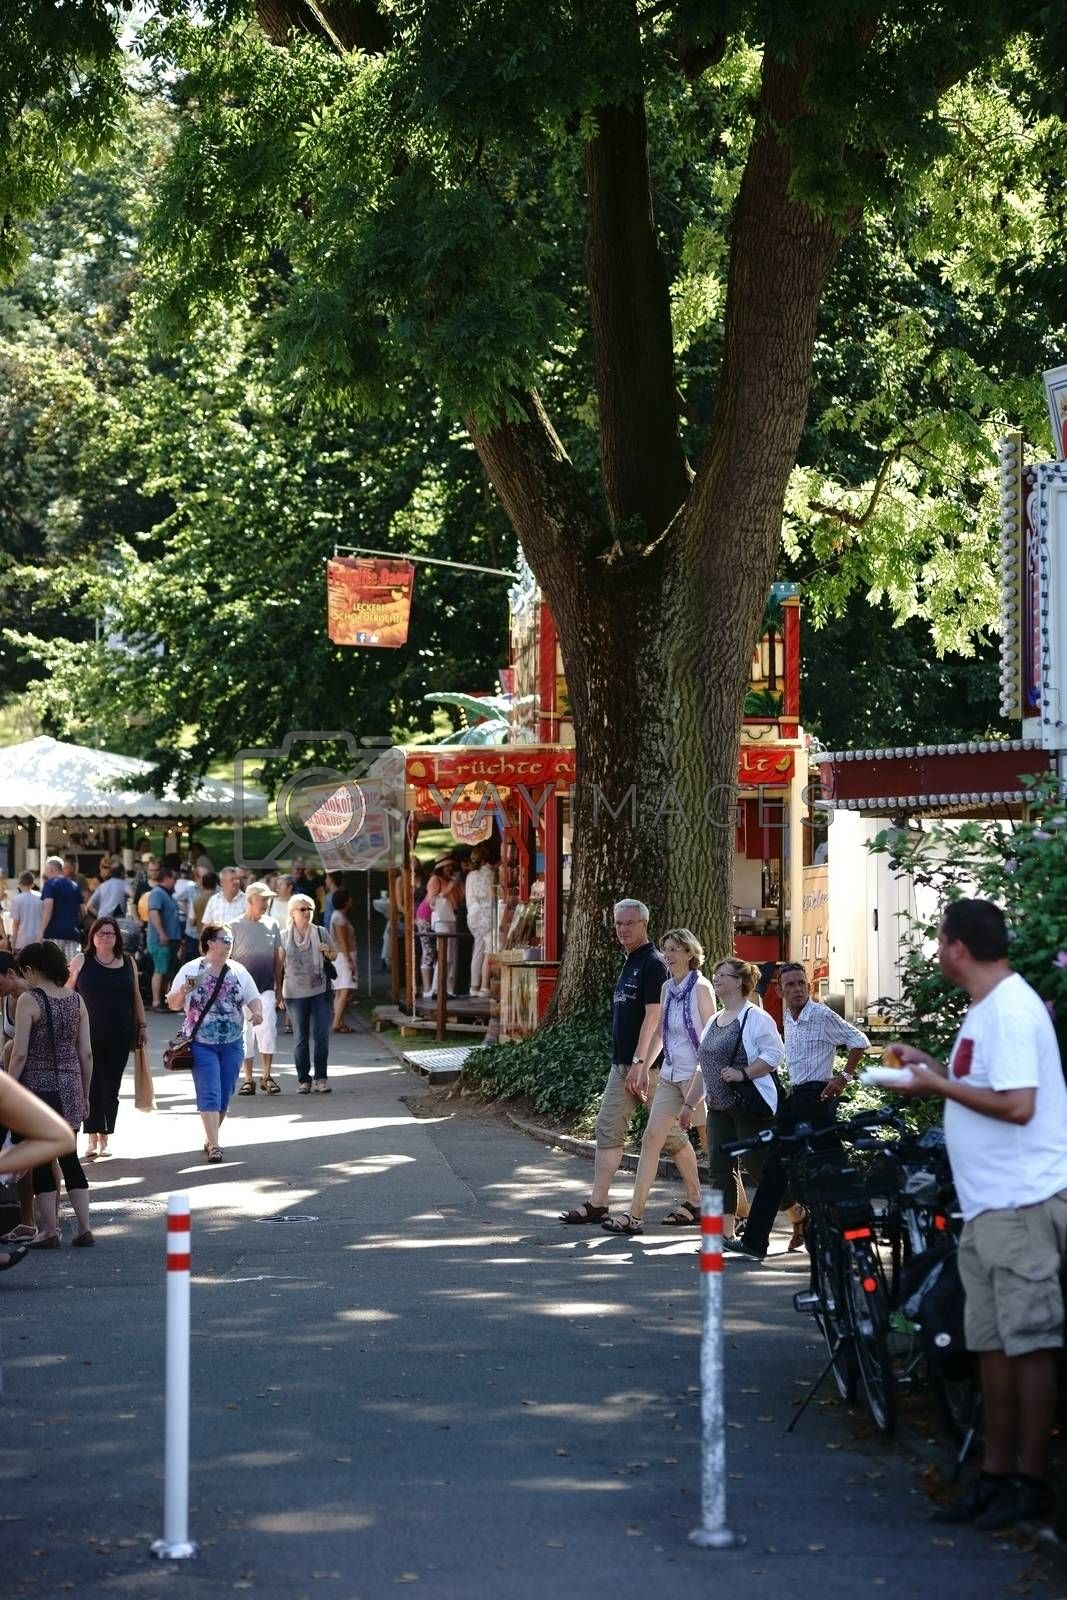 Mainz, Germany - August 29, 2015: Wine lovers and Art lovers visited the artists' market on the Mainz Wine Market in the city park and rose garden on August 29, 2015 in Mainz.